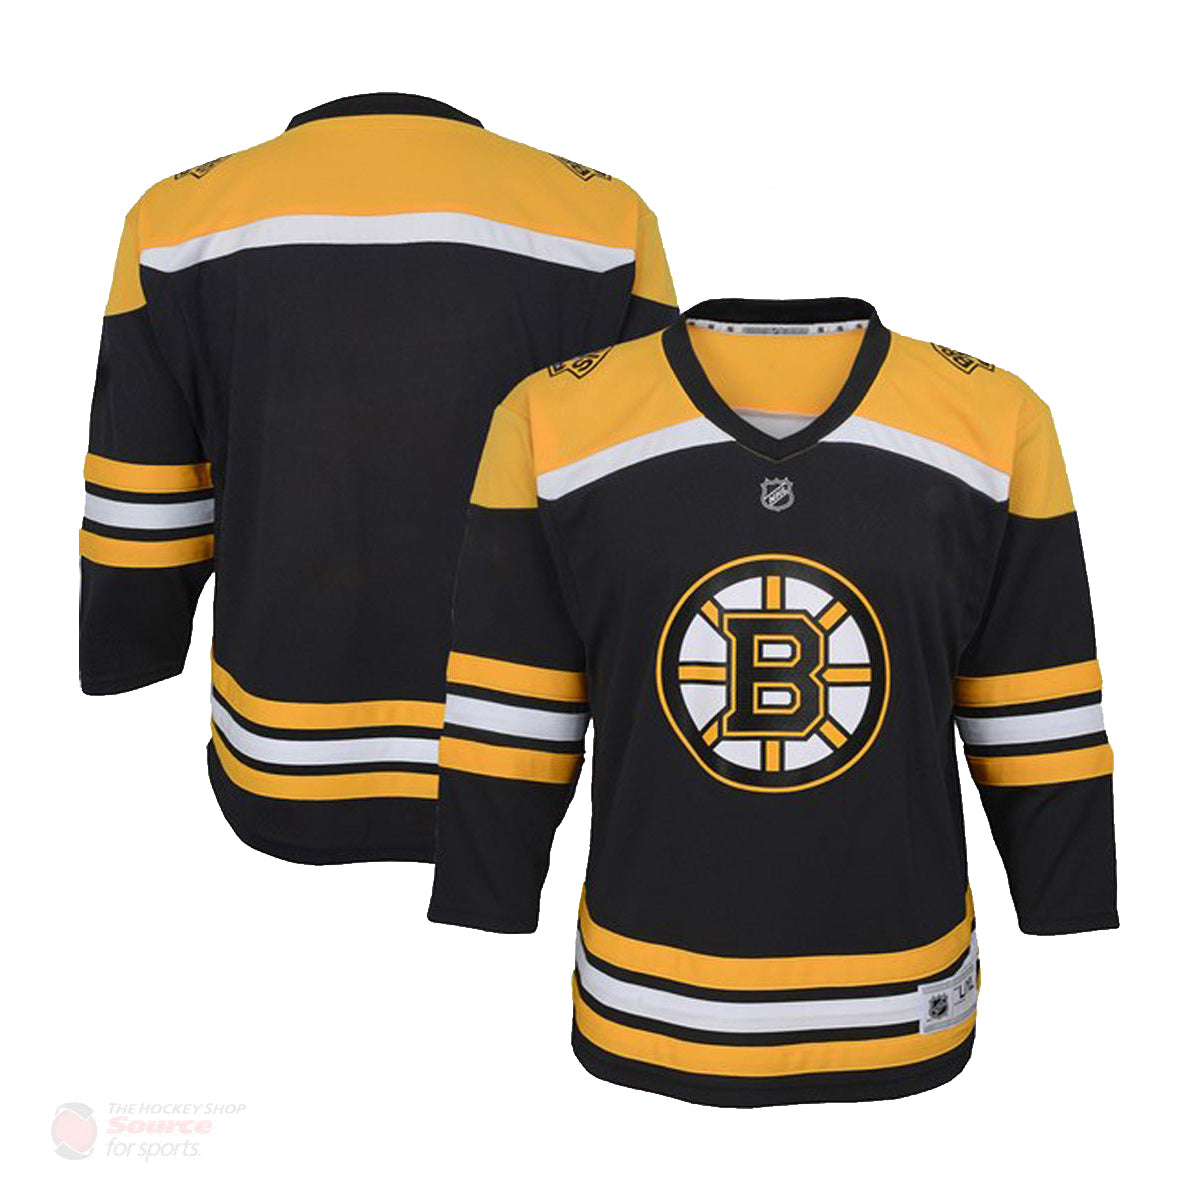 Boston Bruins Home Outer Stuff Replica Infant Jersey